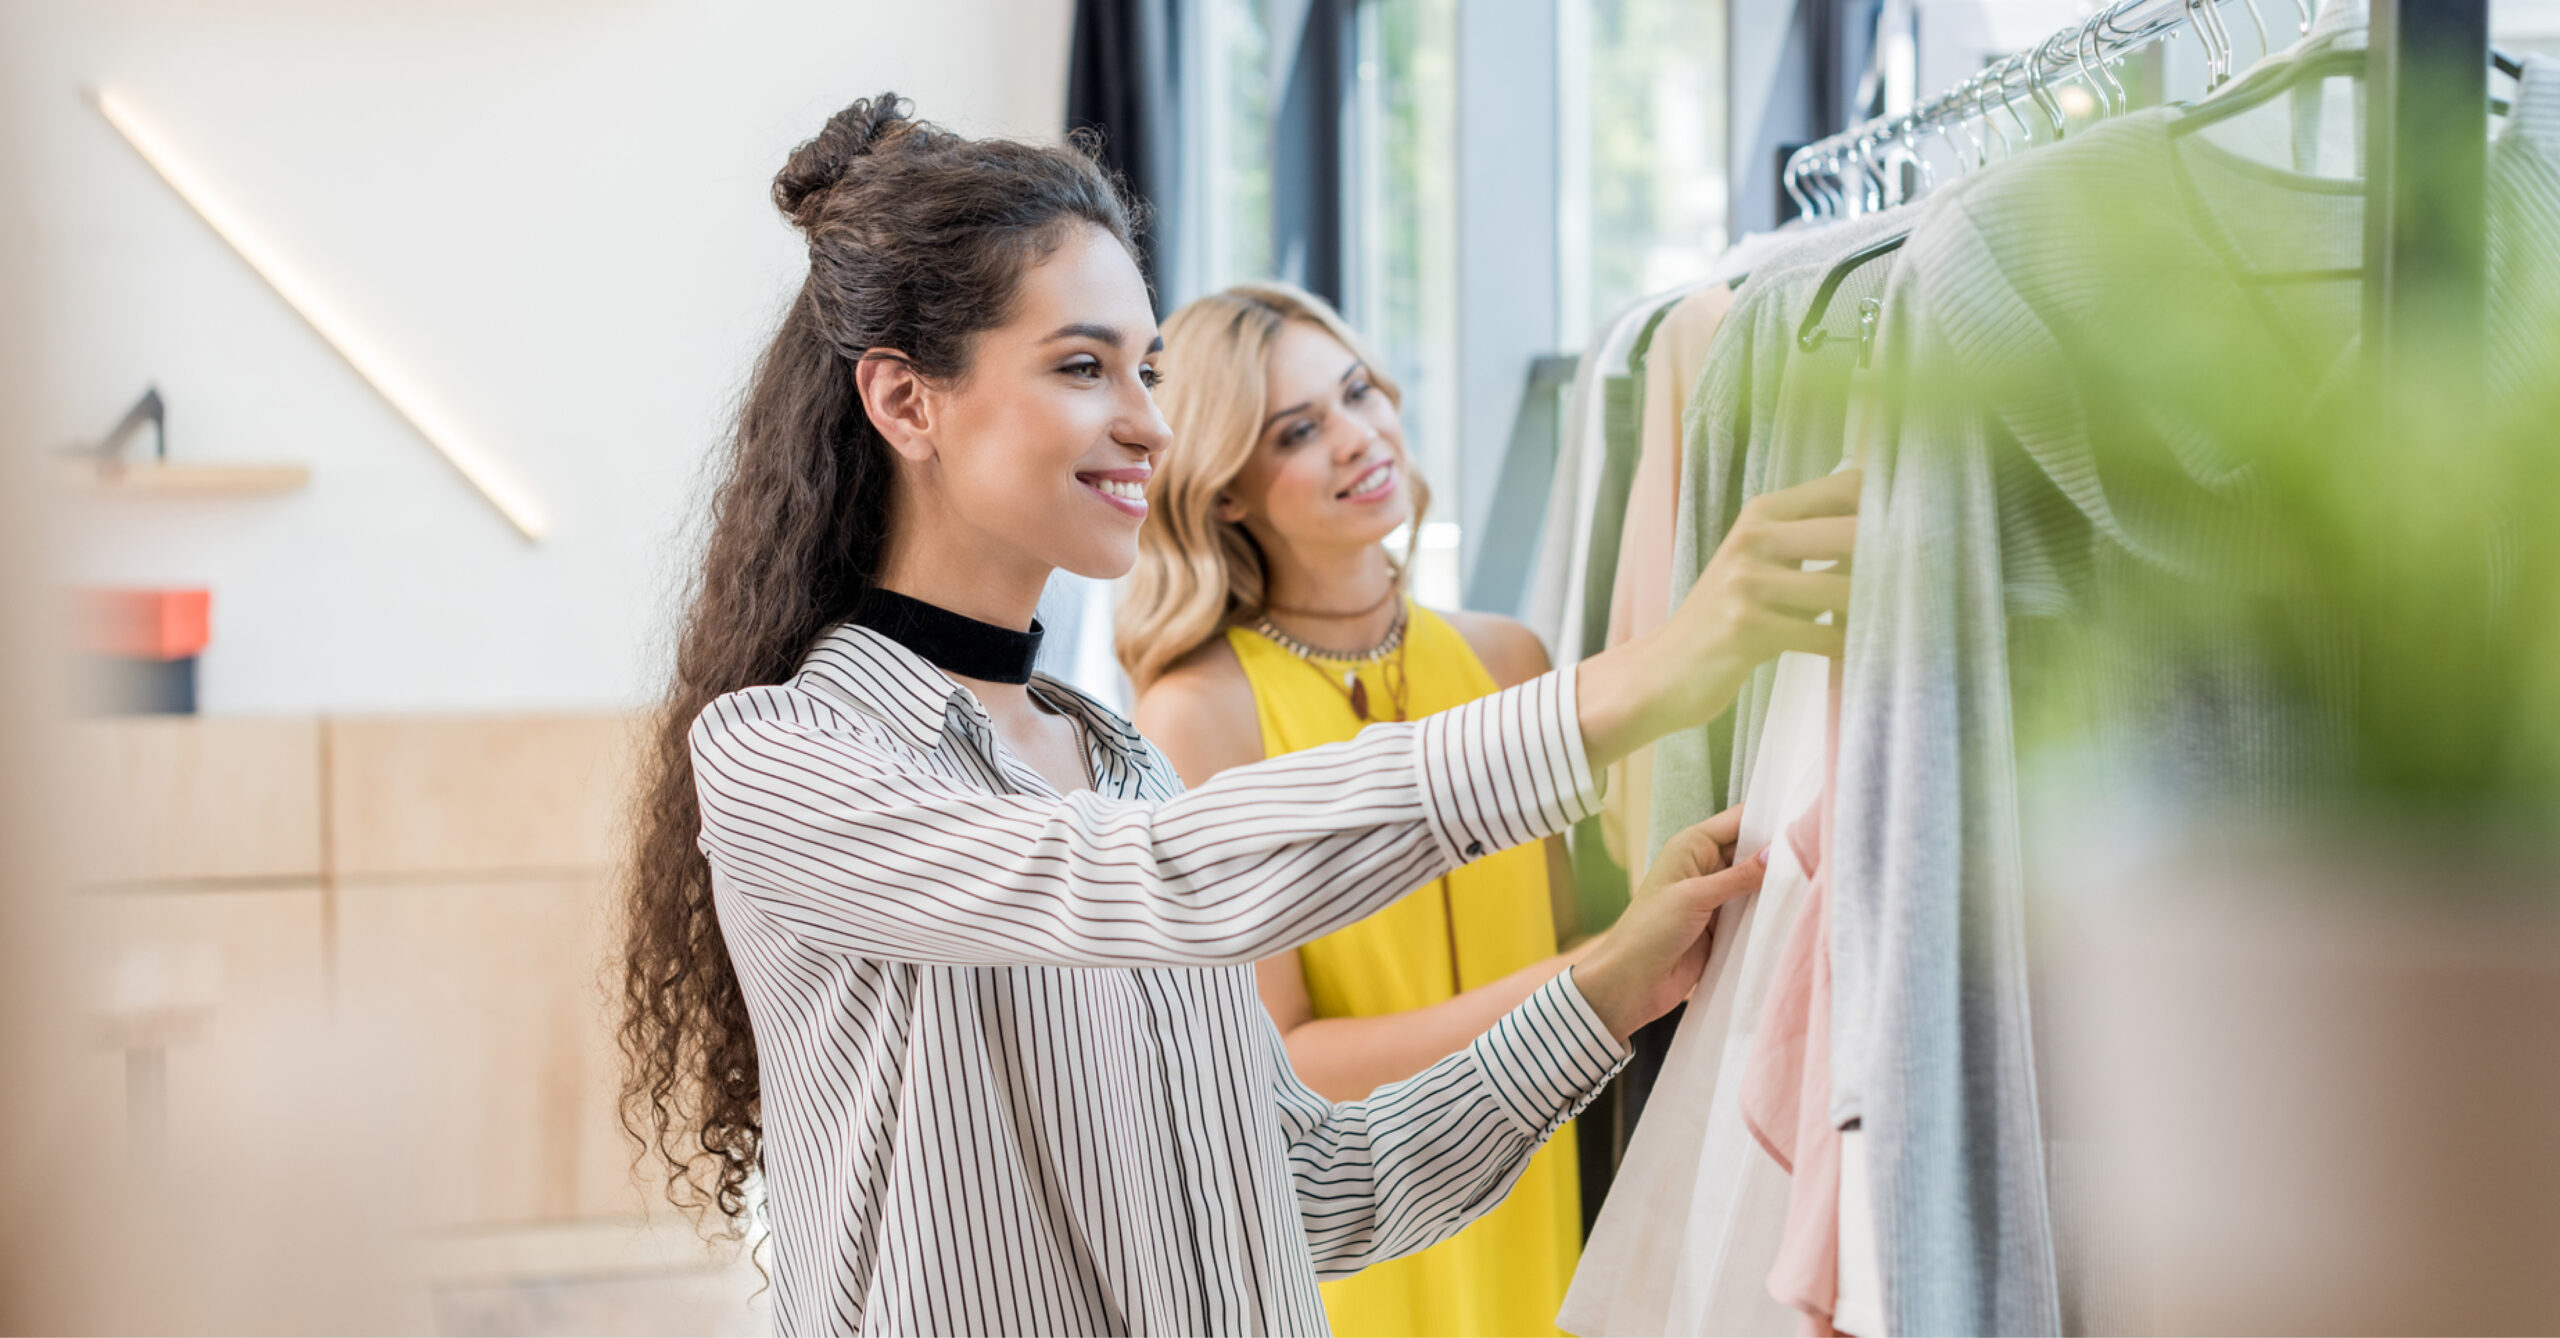 How To Attract Customers To Visit Your Shop In Person